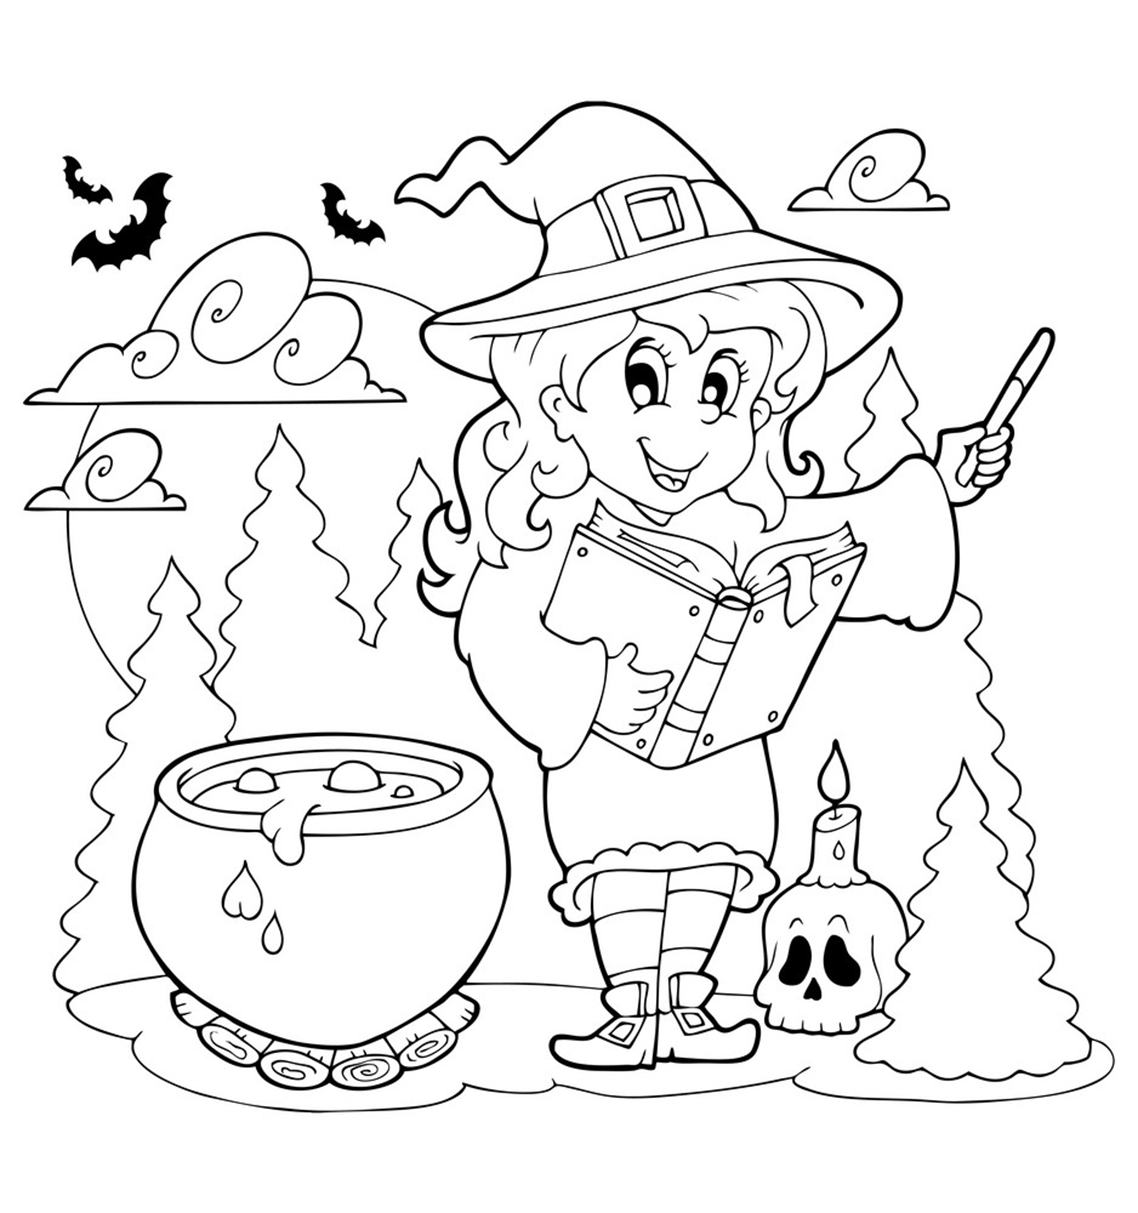 Kumpulan Sketsa Download Halloween Coloring terpopuler